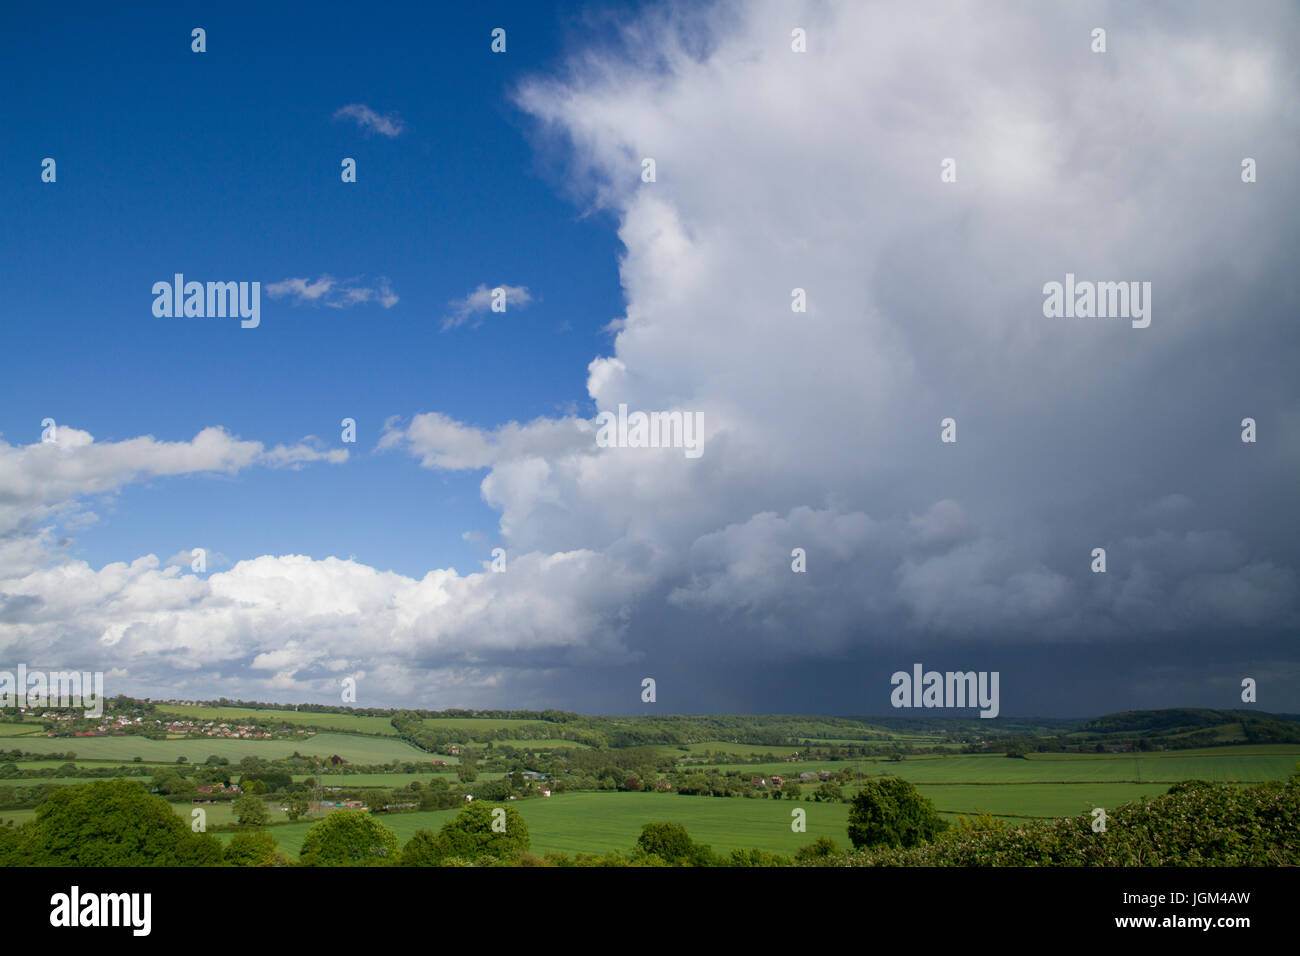 A large storm cloud with falling rain above the Chiltern Hills in Buckinghamshire. - Stock Image